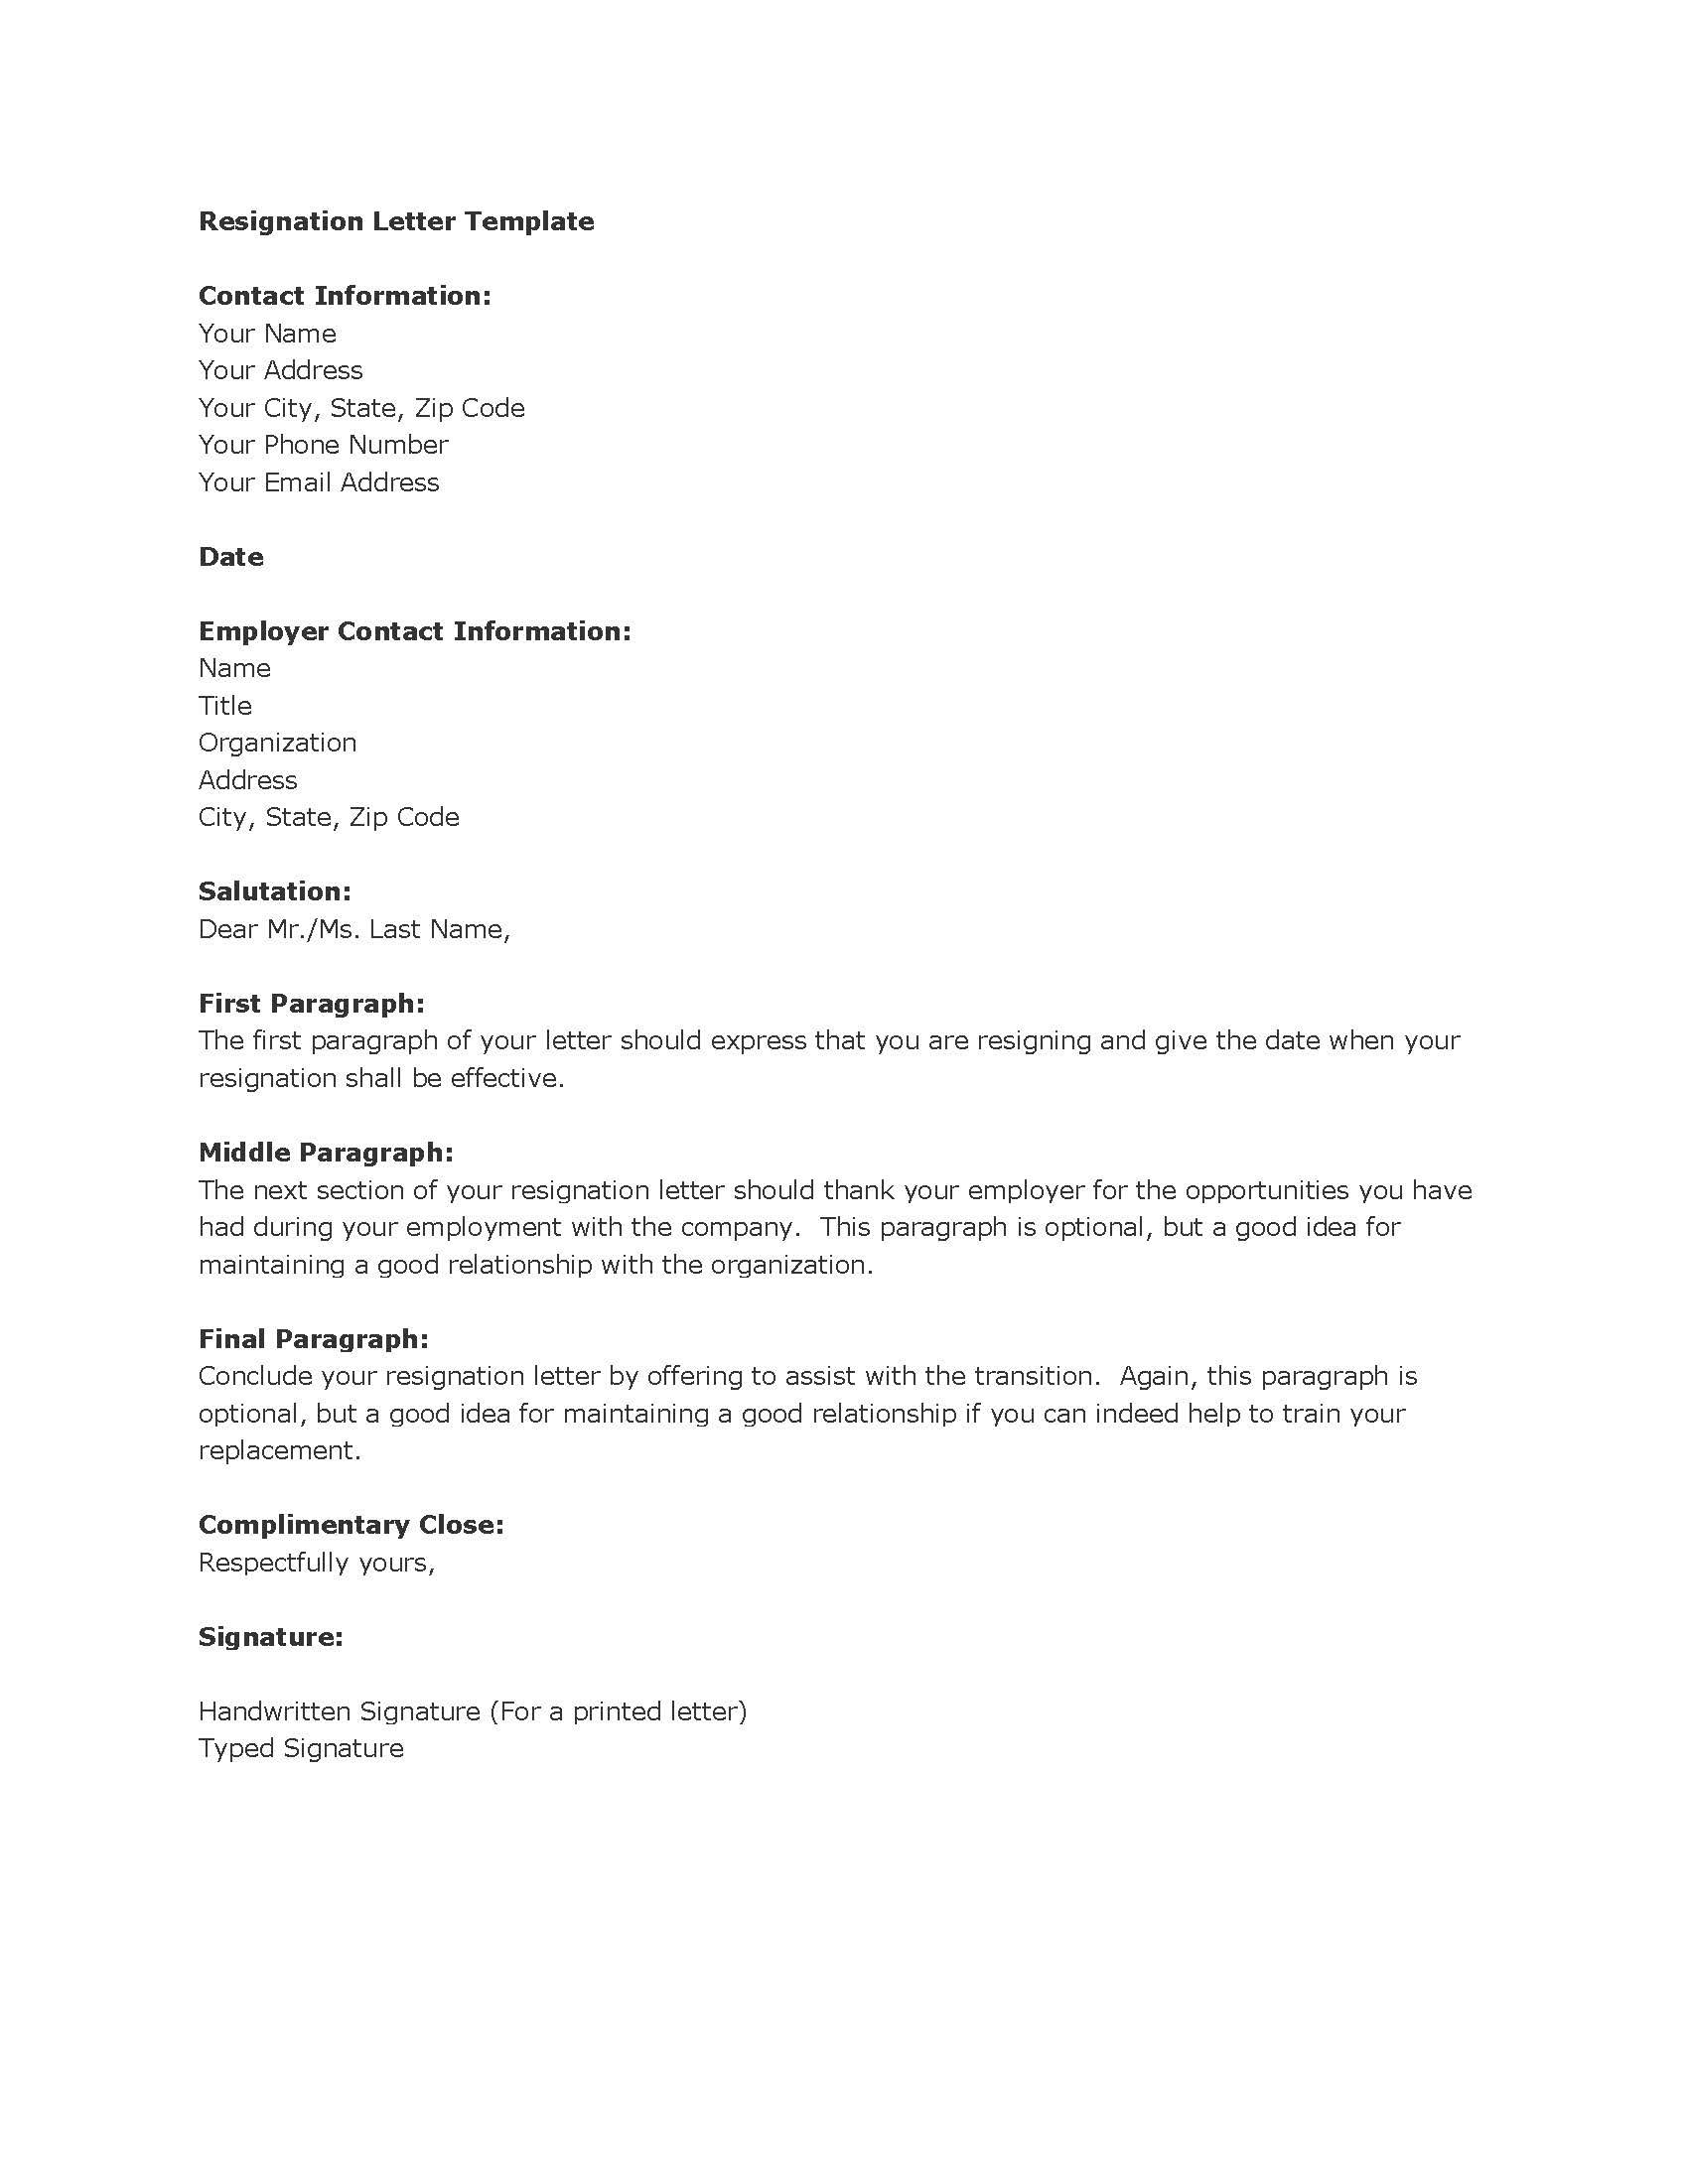 Example resignation letter best ideas about resignation sample letter of resignation examples letter of resignation opening thecheapjerseys Image collections